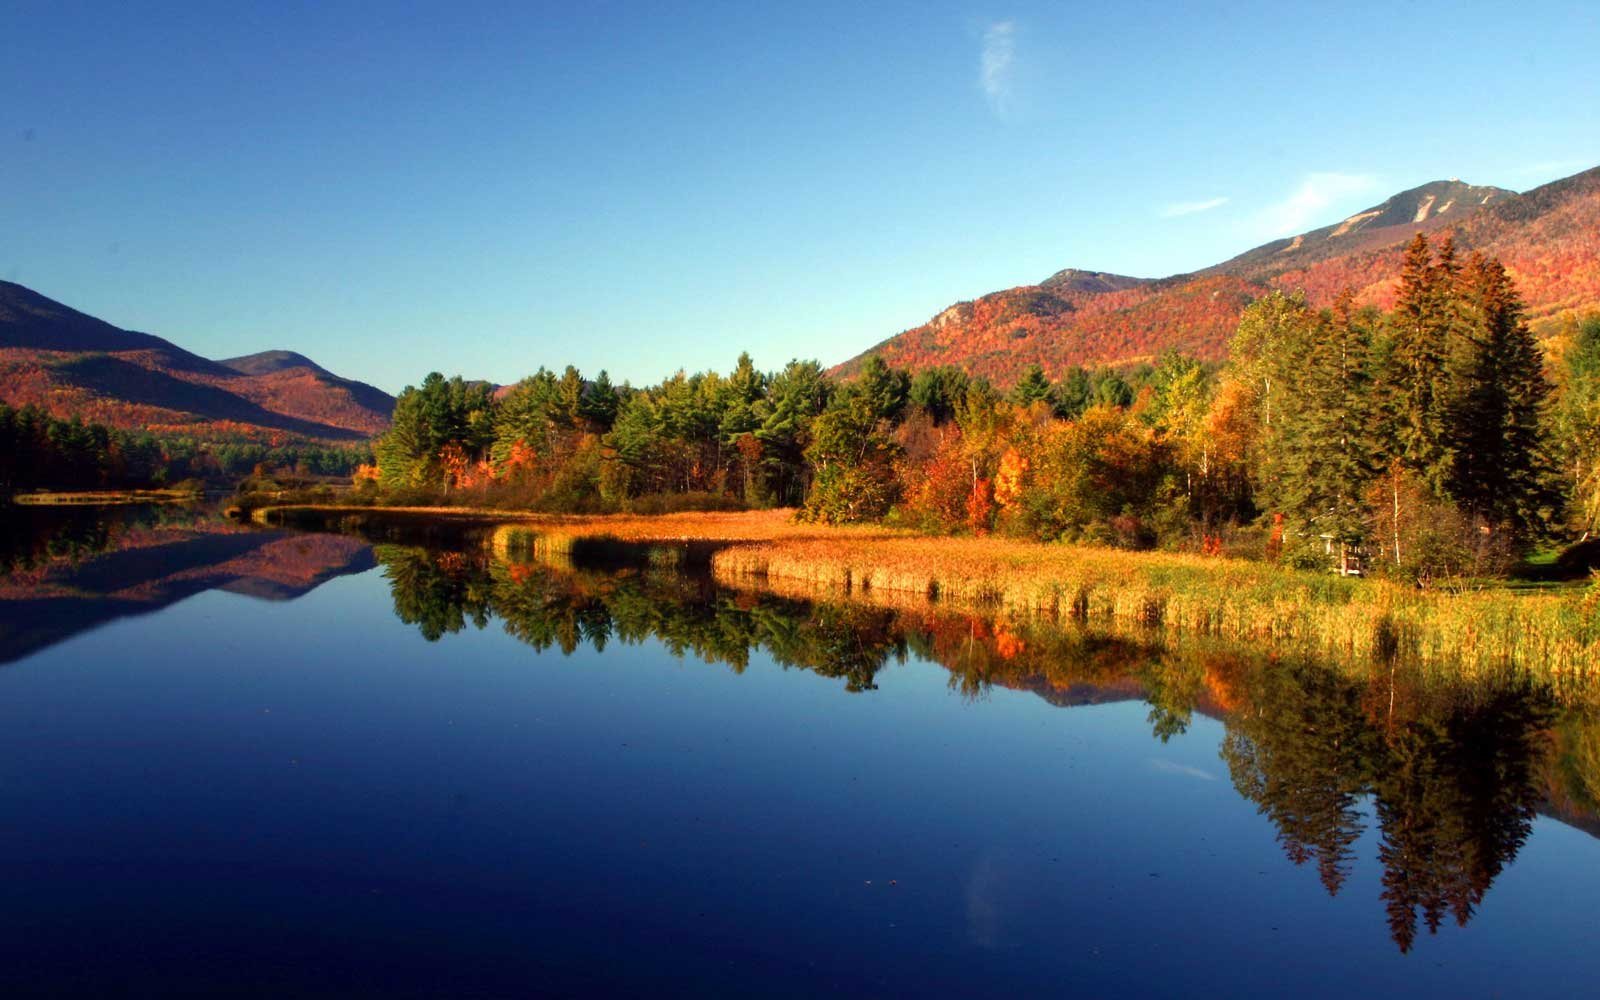 201408-w-towns-fall-colors-lake-placid